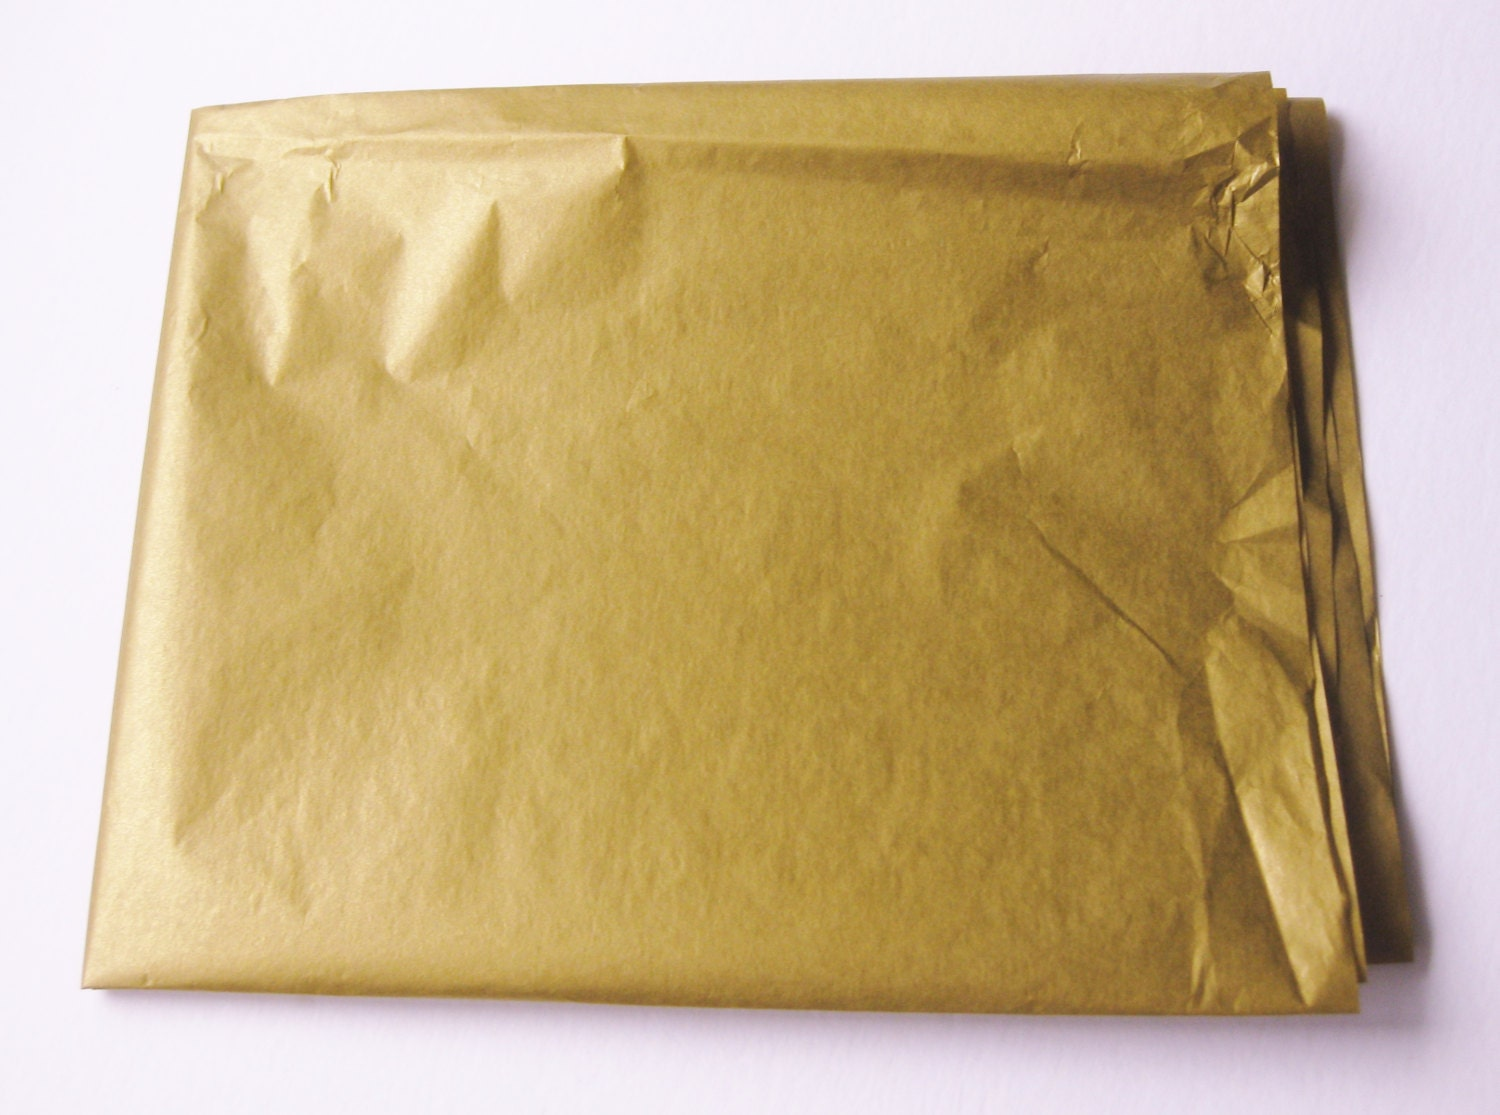 10 Sheets of Double-Sided METALLIC GOLD Tissue Paper 20